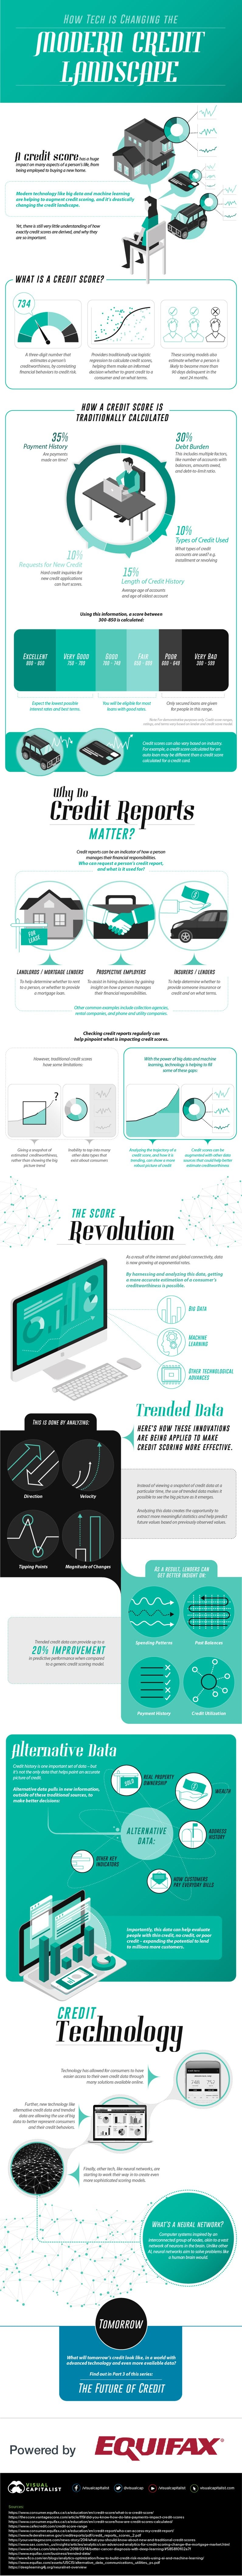 How Tech is Changing the Modern Credit Landscape #Infographic